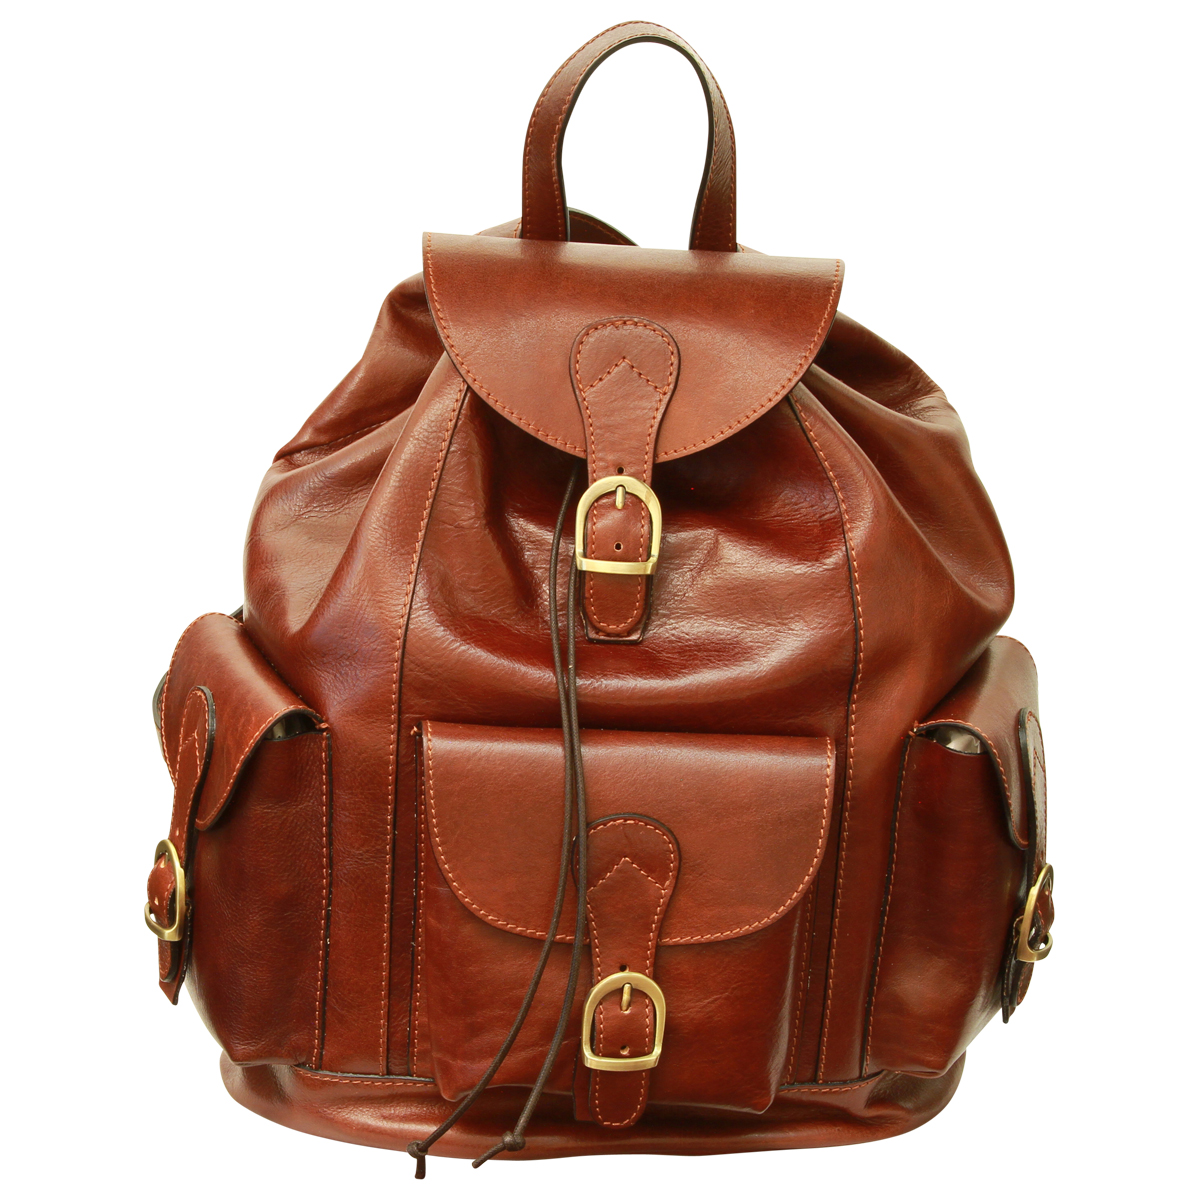 Old Angler Toscana Collection Ryggsäck Leather Backpack 1091 ... 5bea10d6d52b6